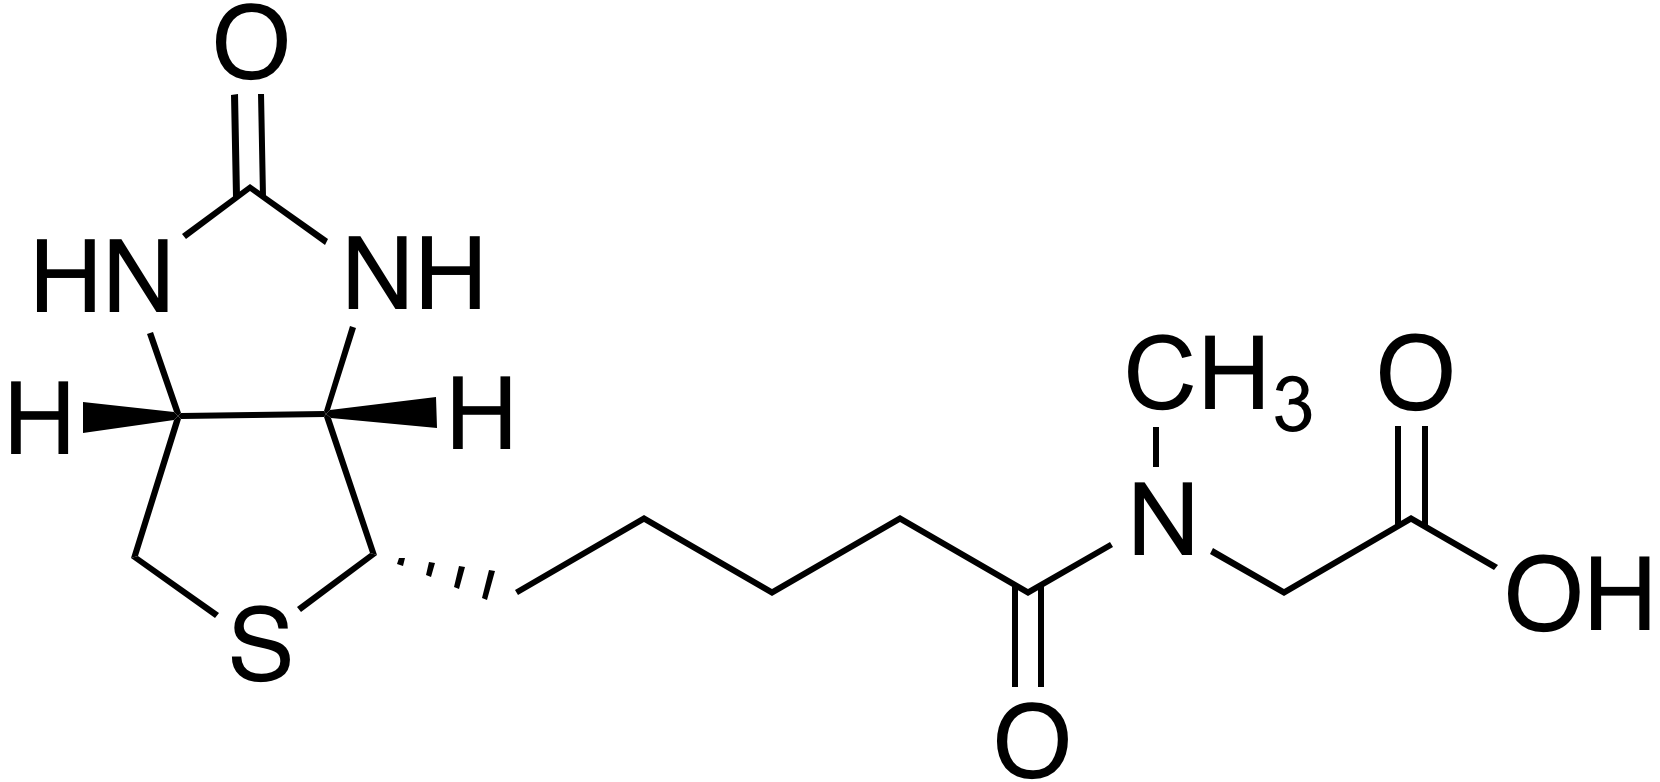 N-Methyl-N-biotinyl glycine